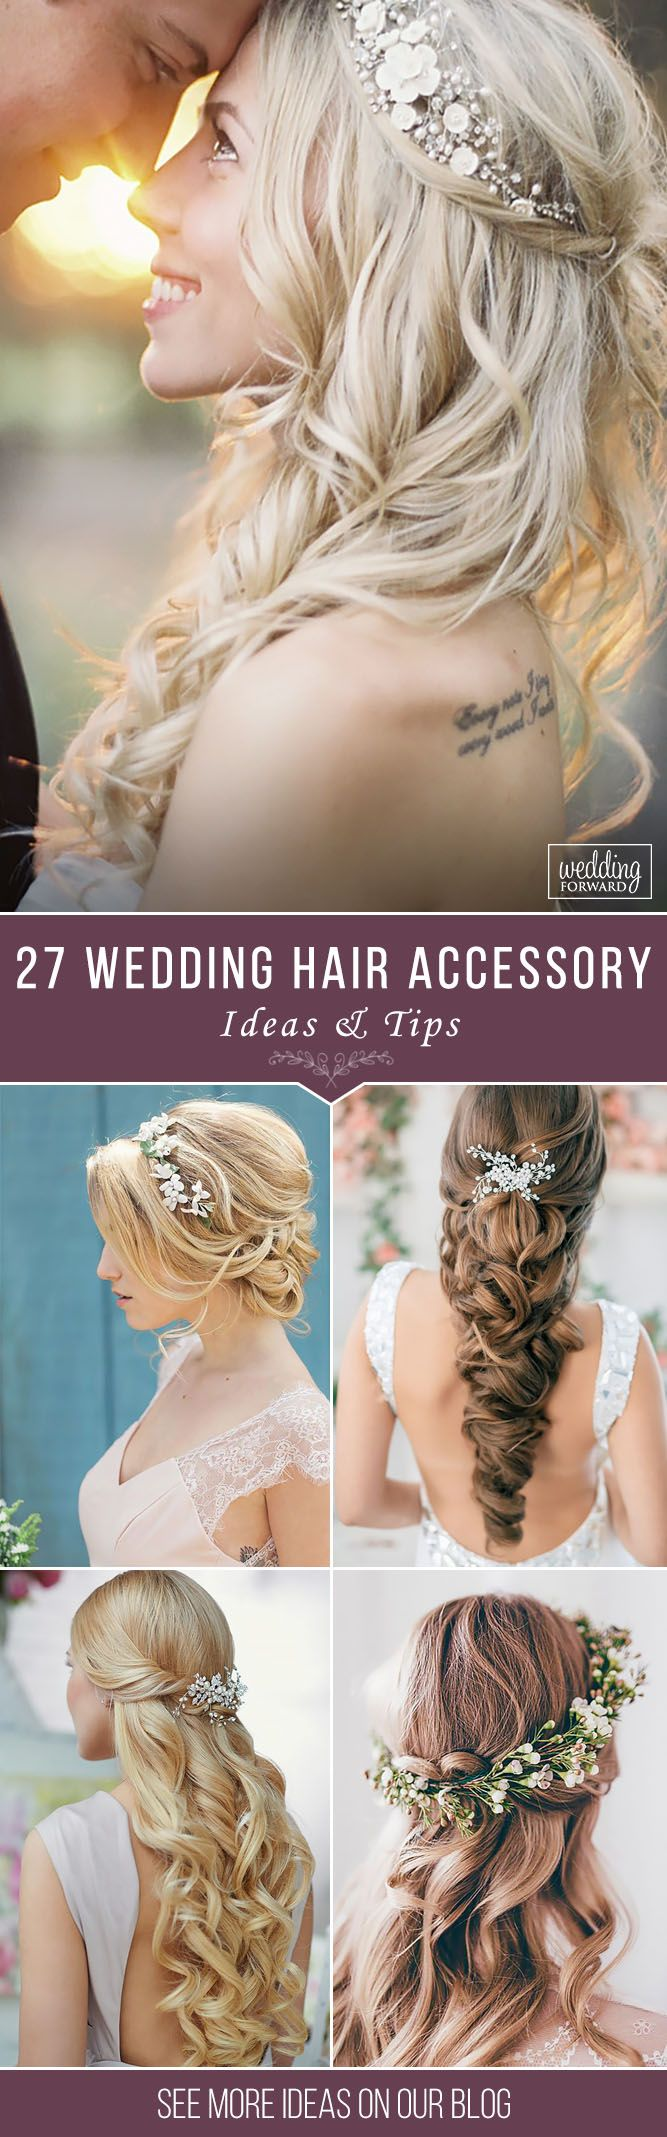 27 Lovely Wedding Hair Accessory Ideas & Tips ❤ Want to add something beautifu...